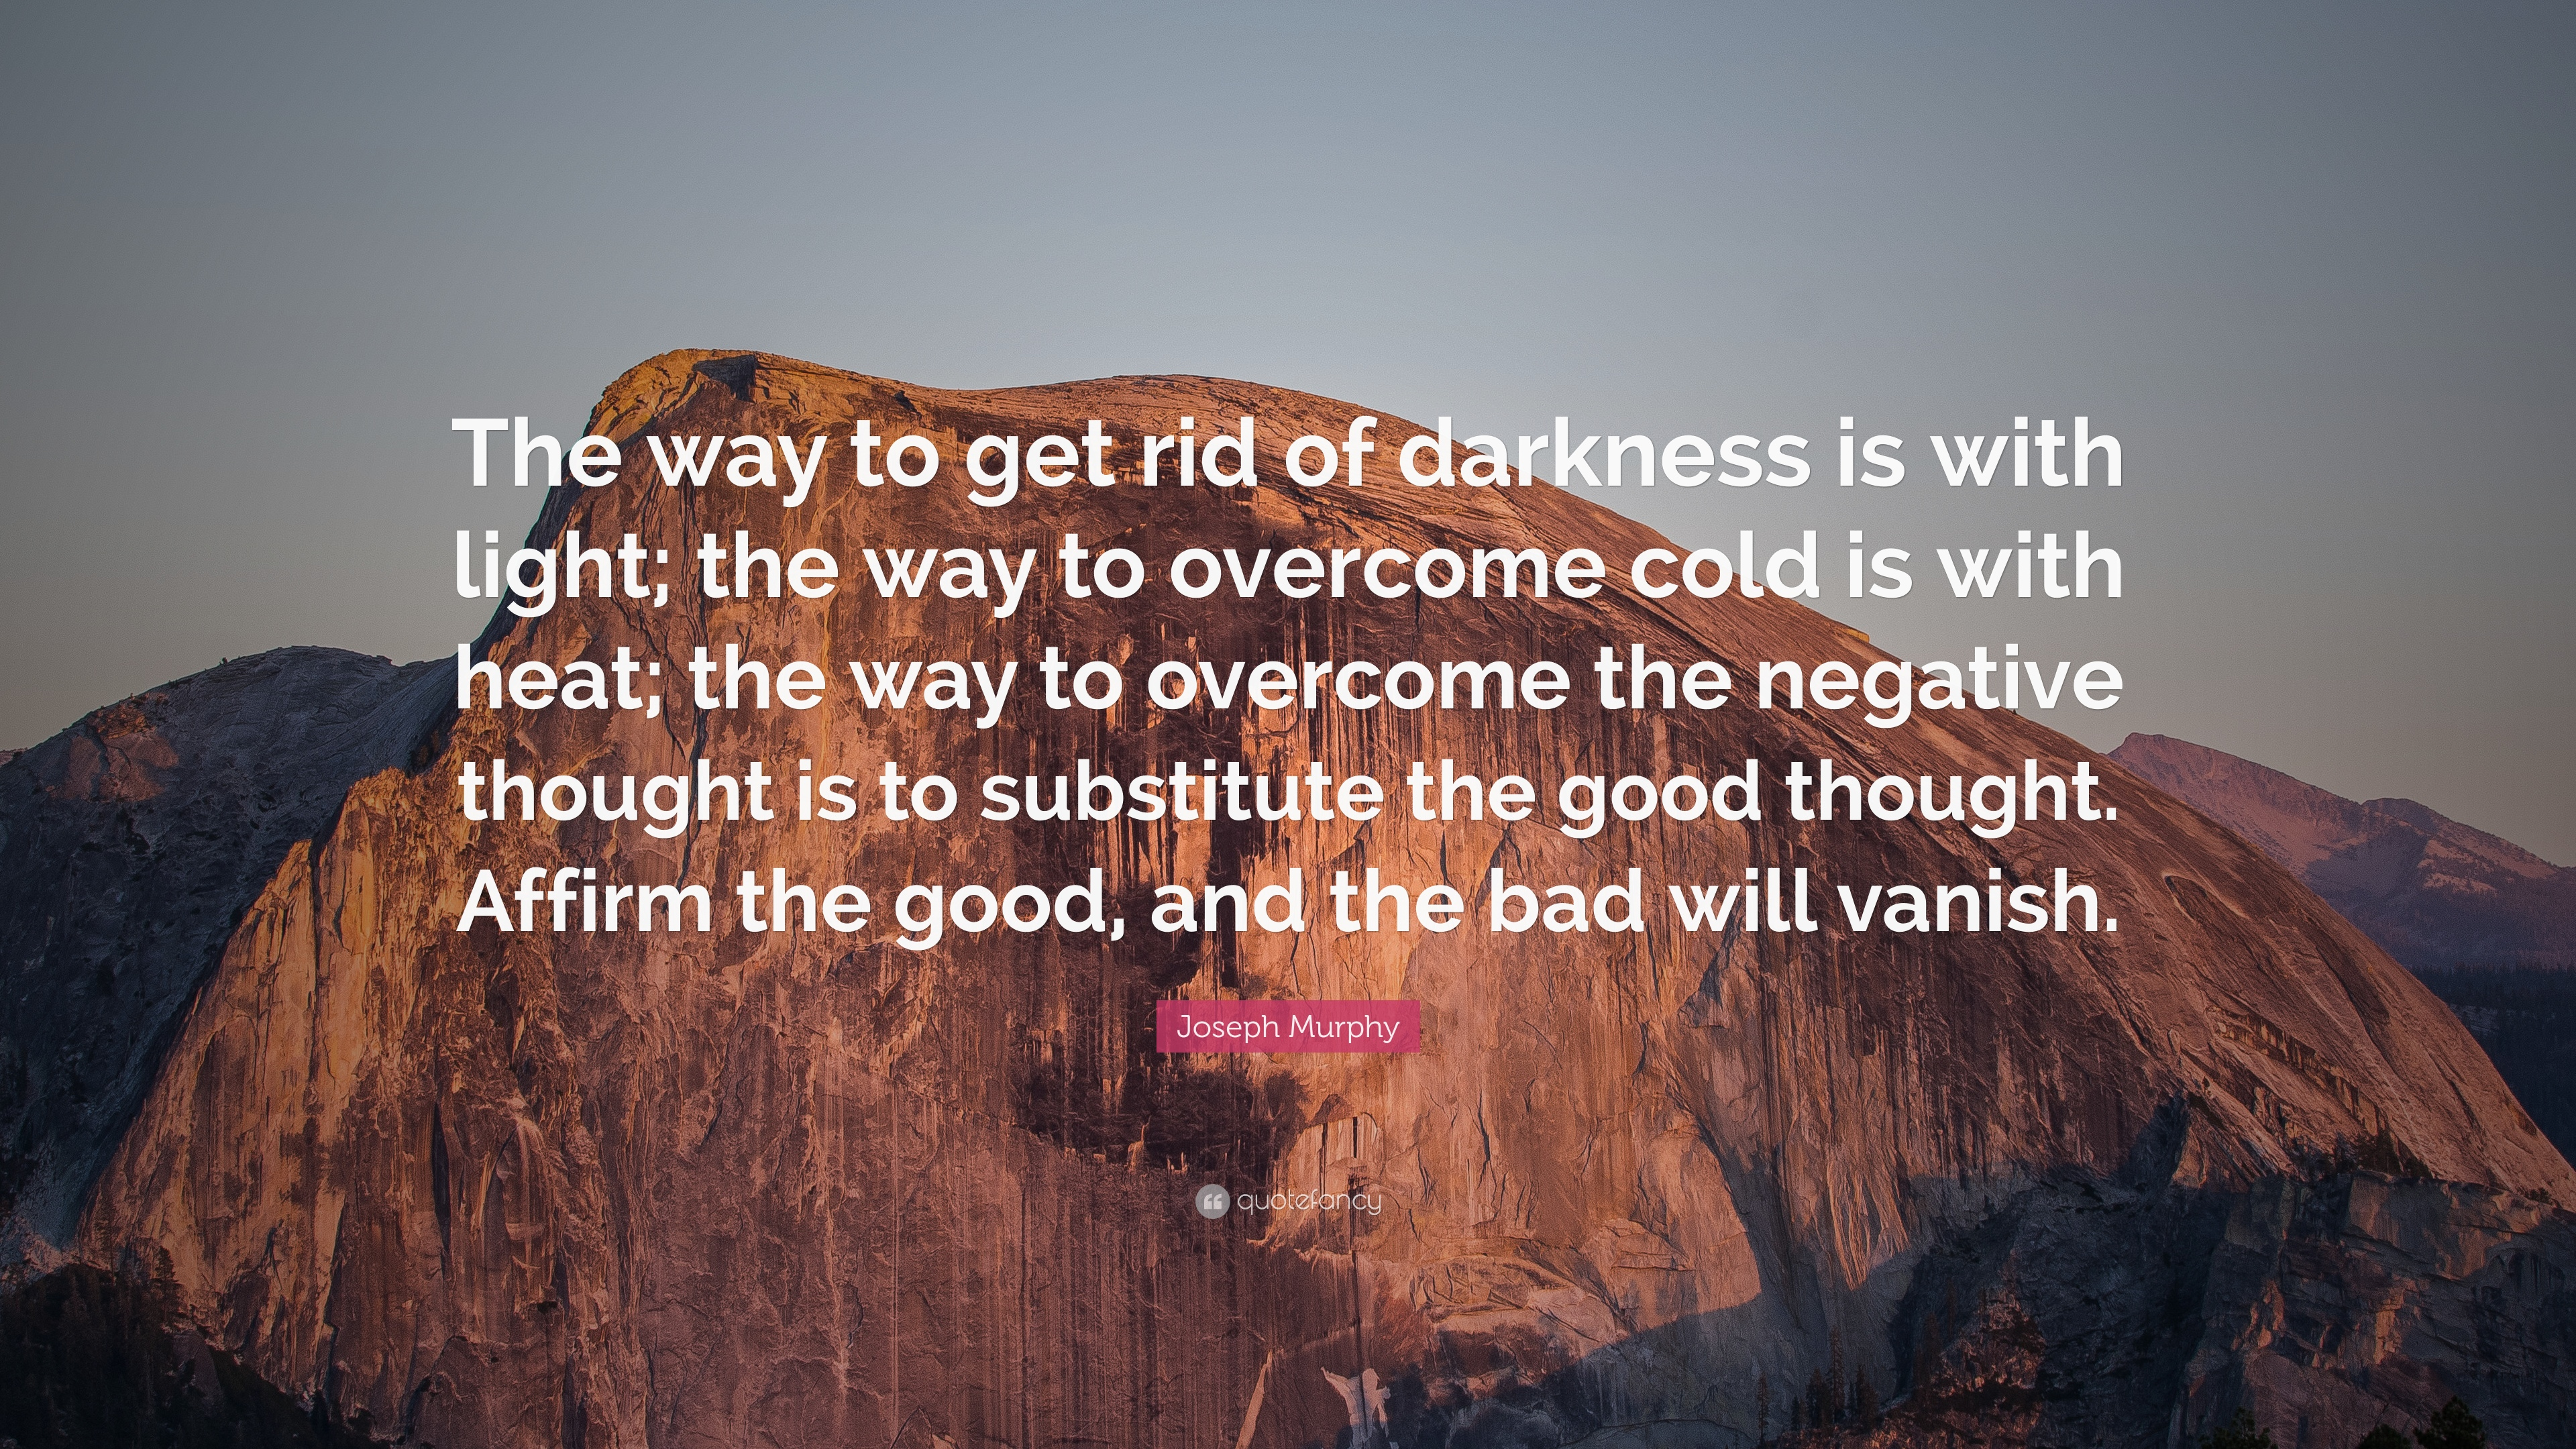 Joseph murphy quote the way to get rid of darkness is with light joseph murphy quote the way to get rid of darkness is with light ccuart Gallery